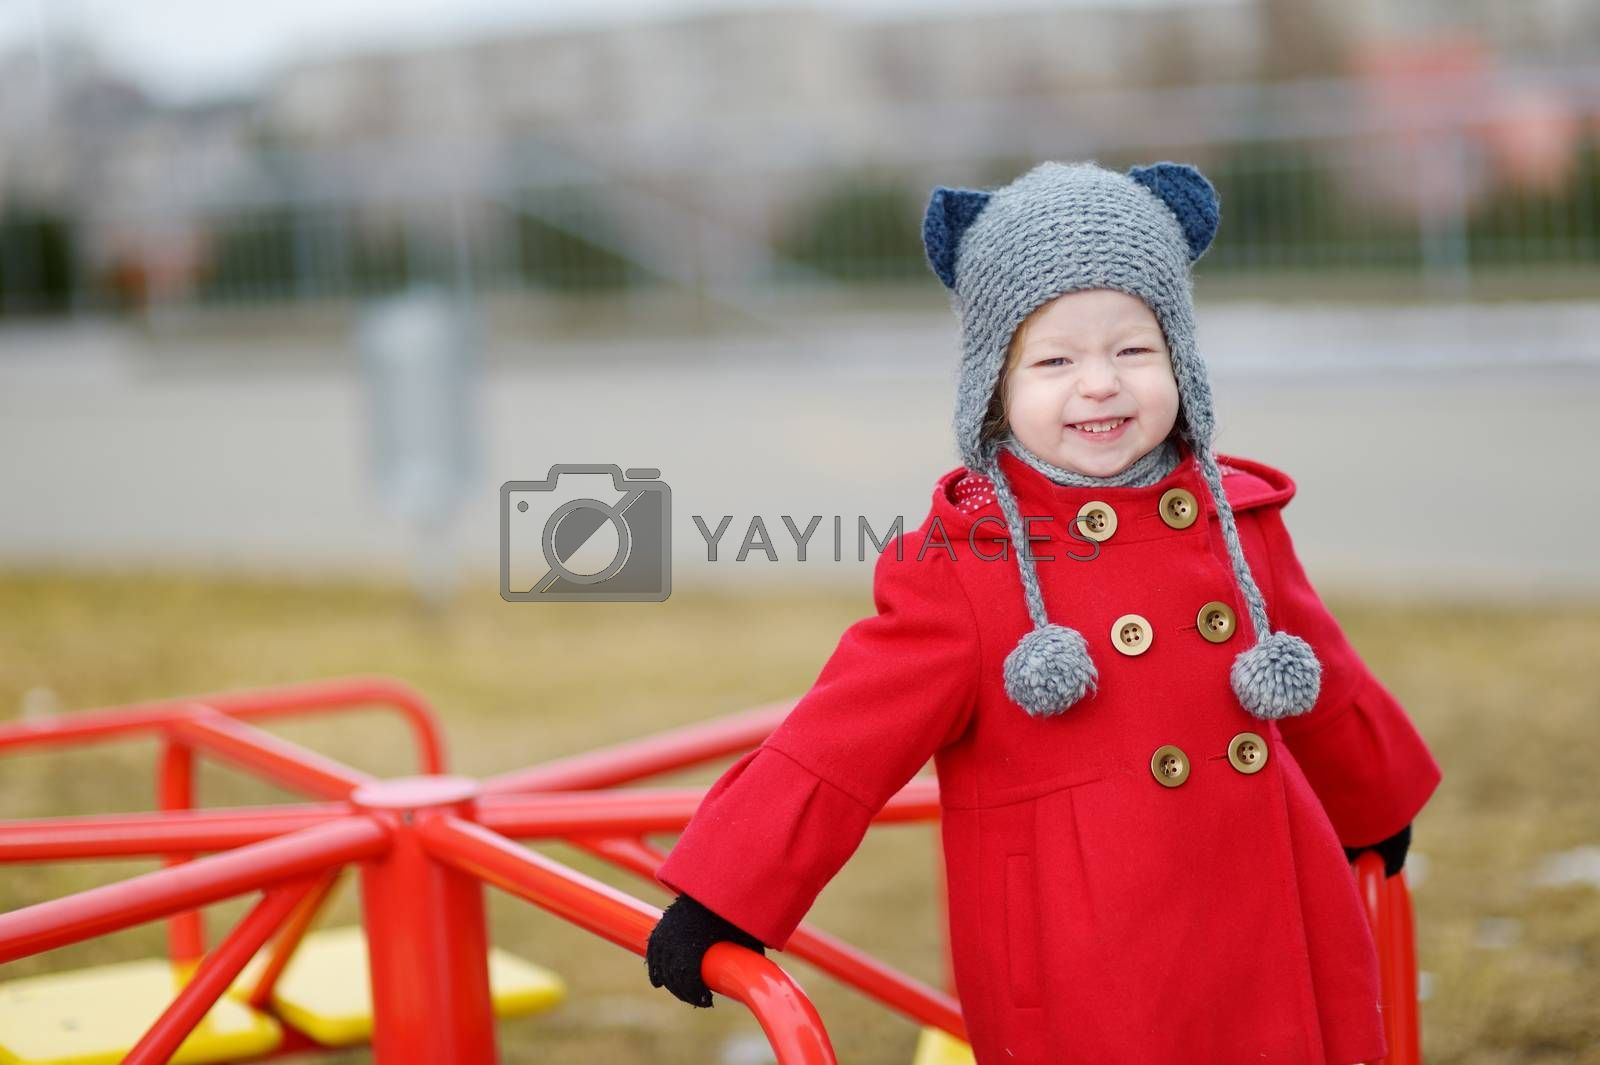 Adorable girl having fun on a playgroud on beautiful spring day